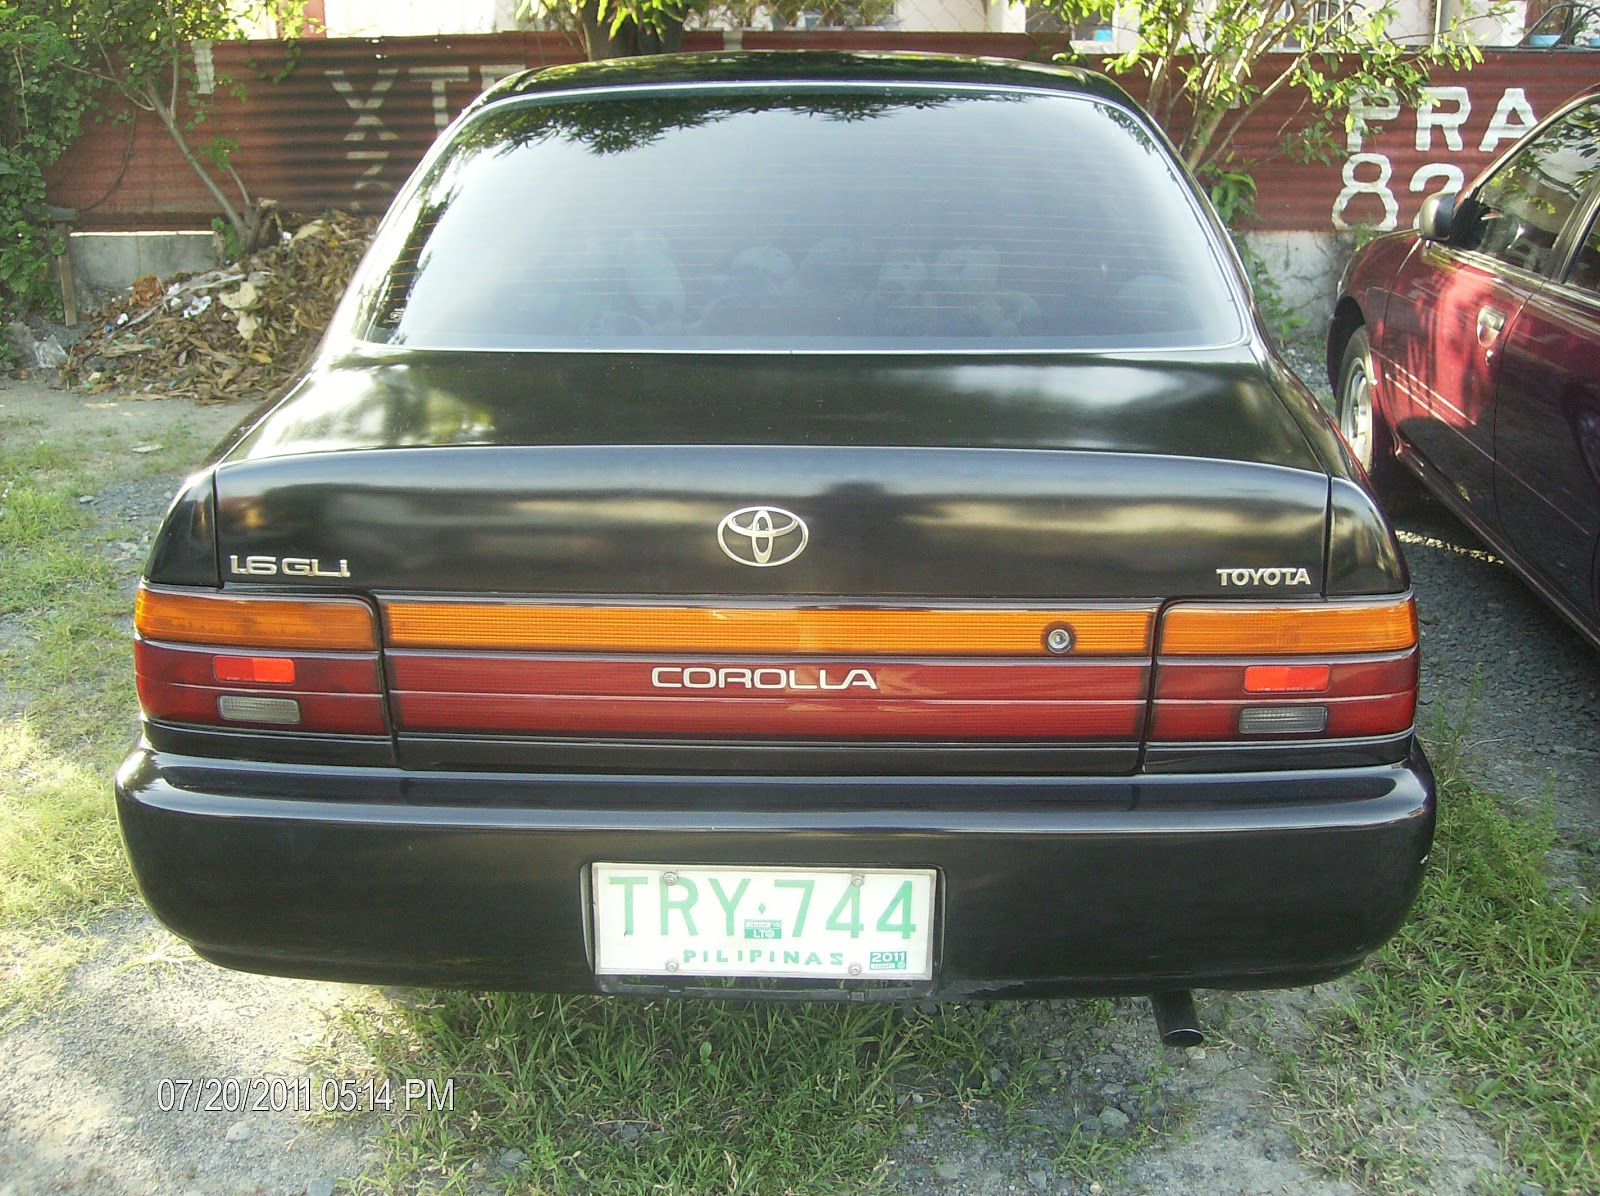 toyota corolla 1998 service manual for sale car truck parts [ 1600 x 1196 Pixel ]